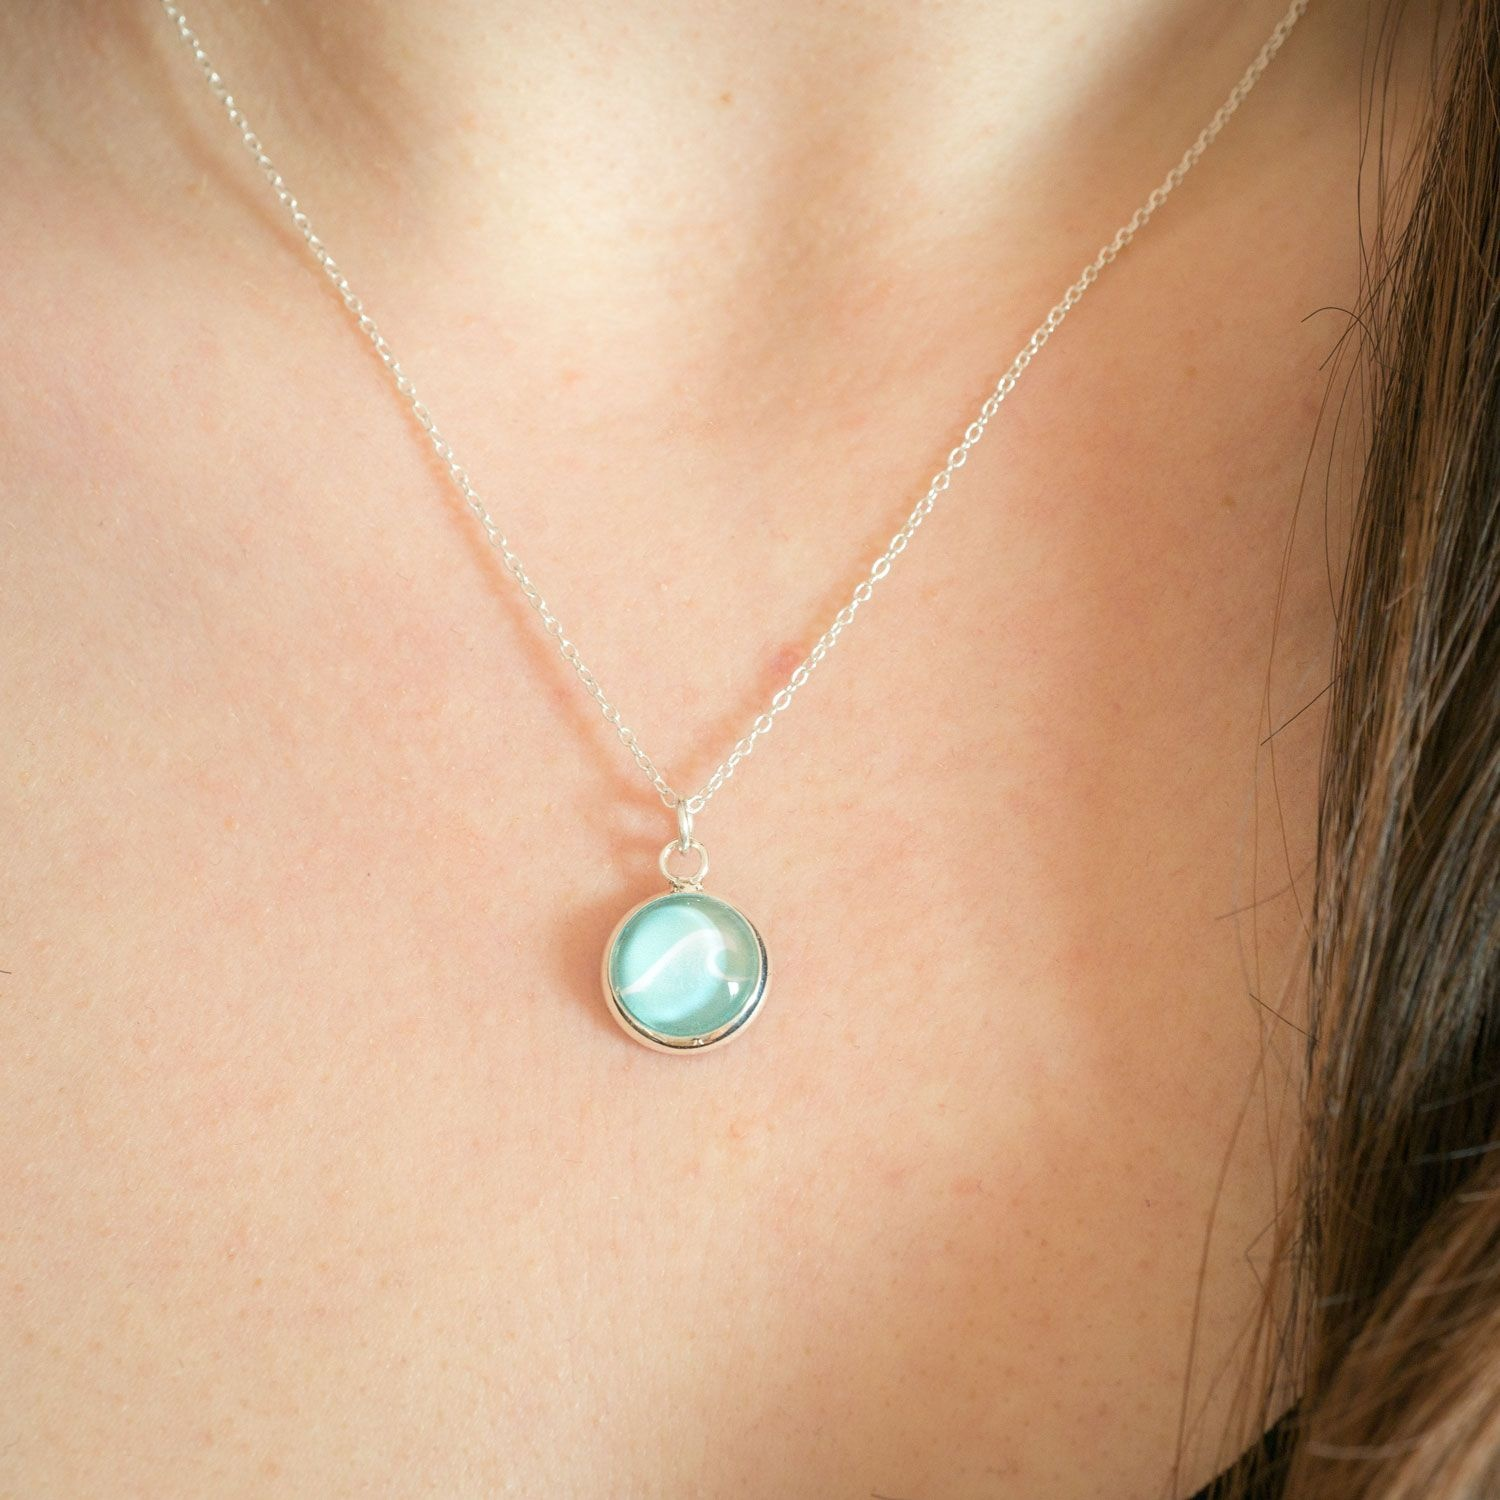 product image for Ocean Wave Necklace